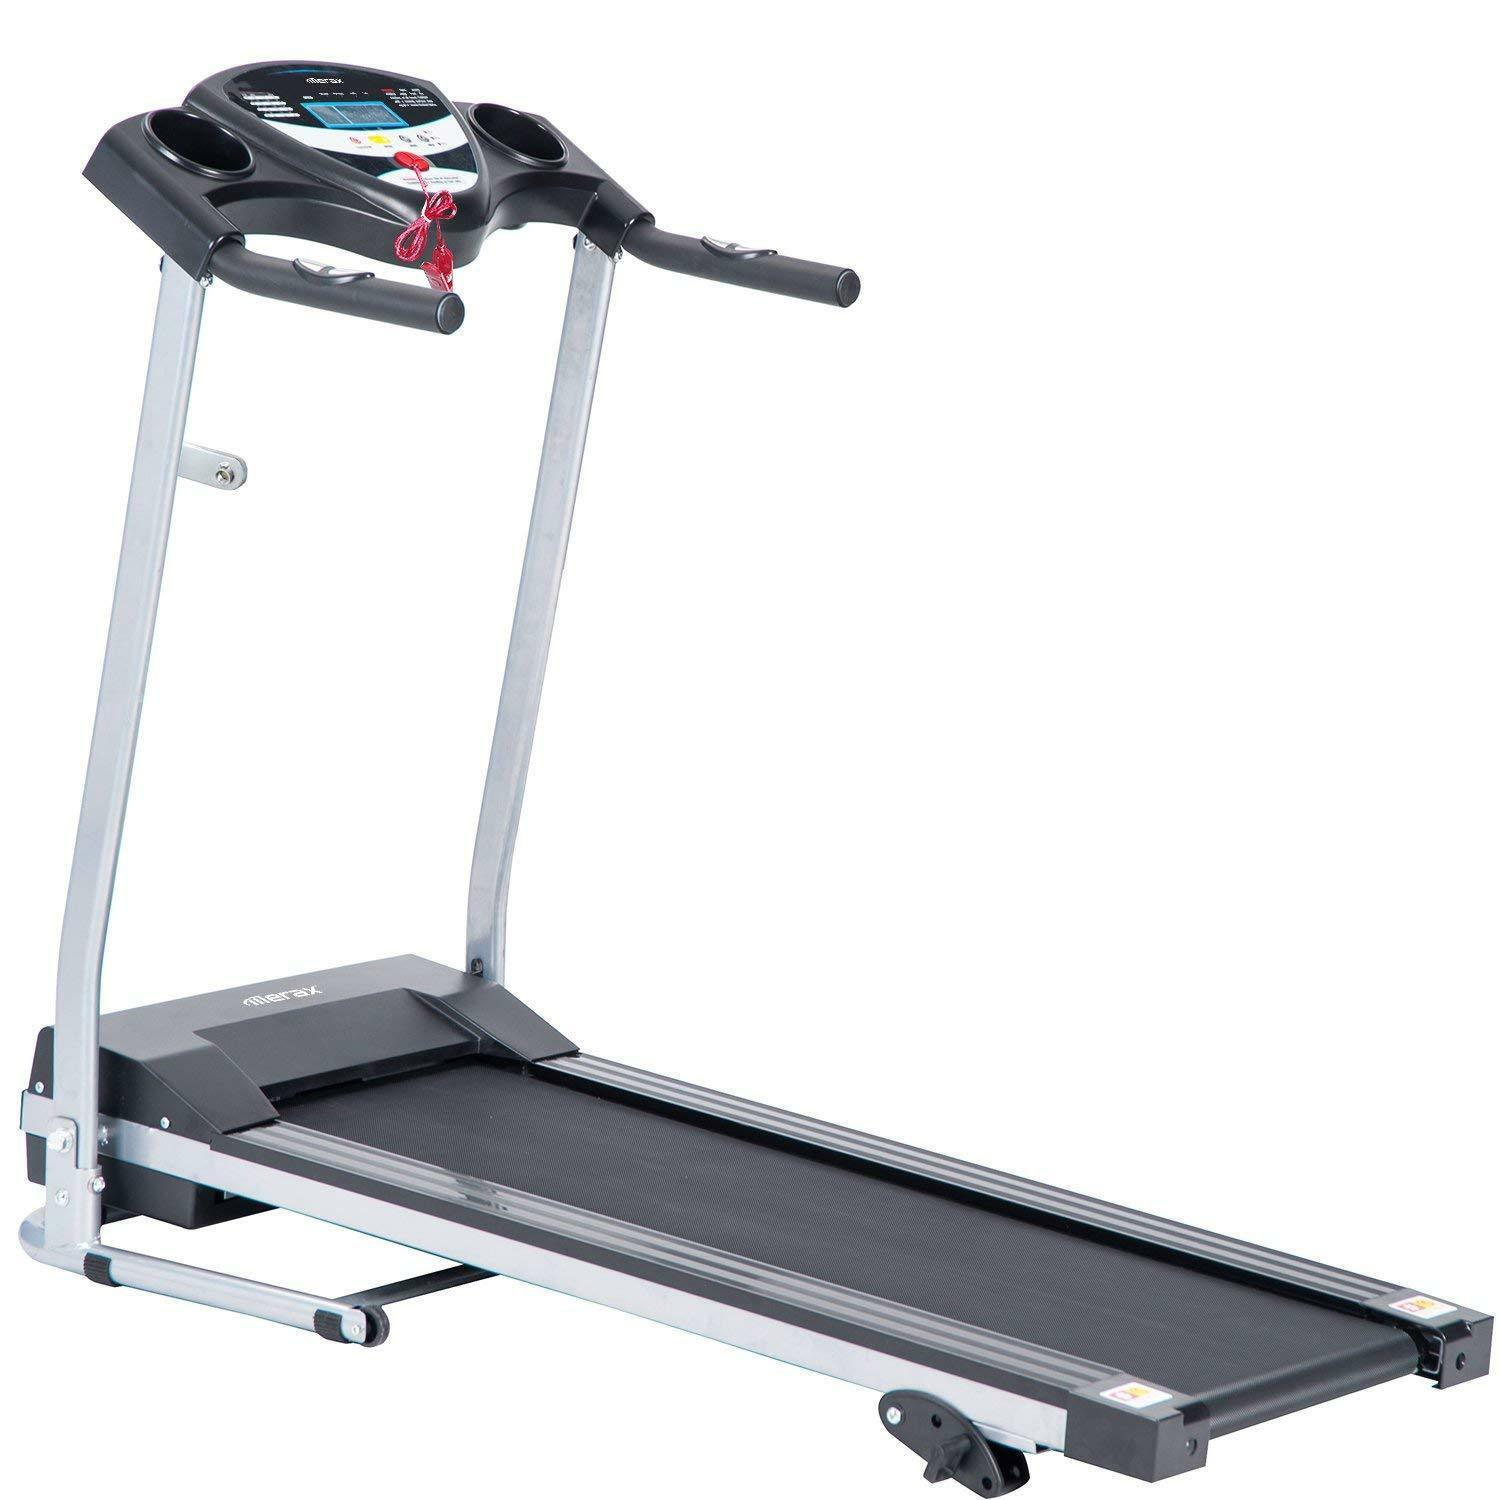 c340a30bcb5 Treadmill Electric Running Exercise Fitness Machine Motorized ...